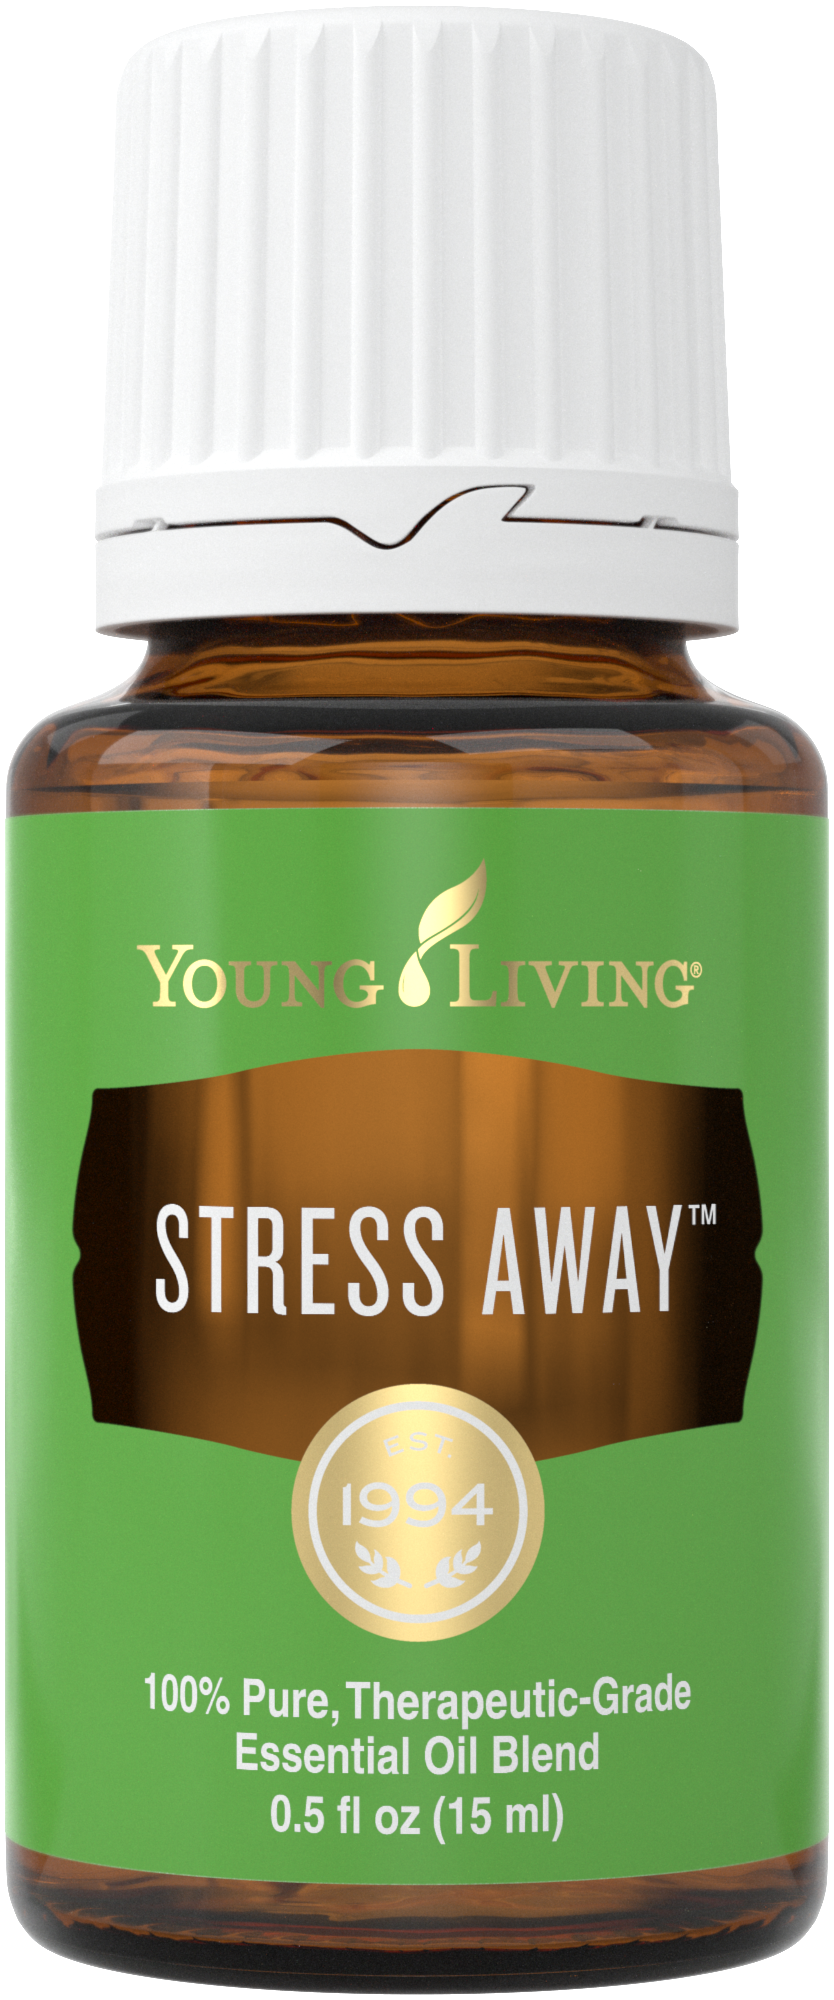 Stress Away essential oil blend | Young Living